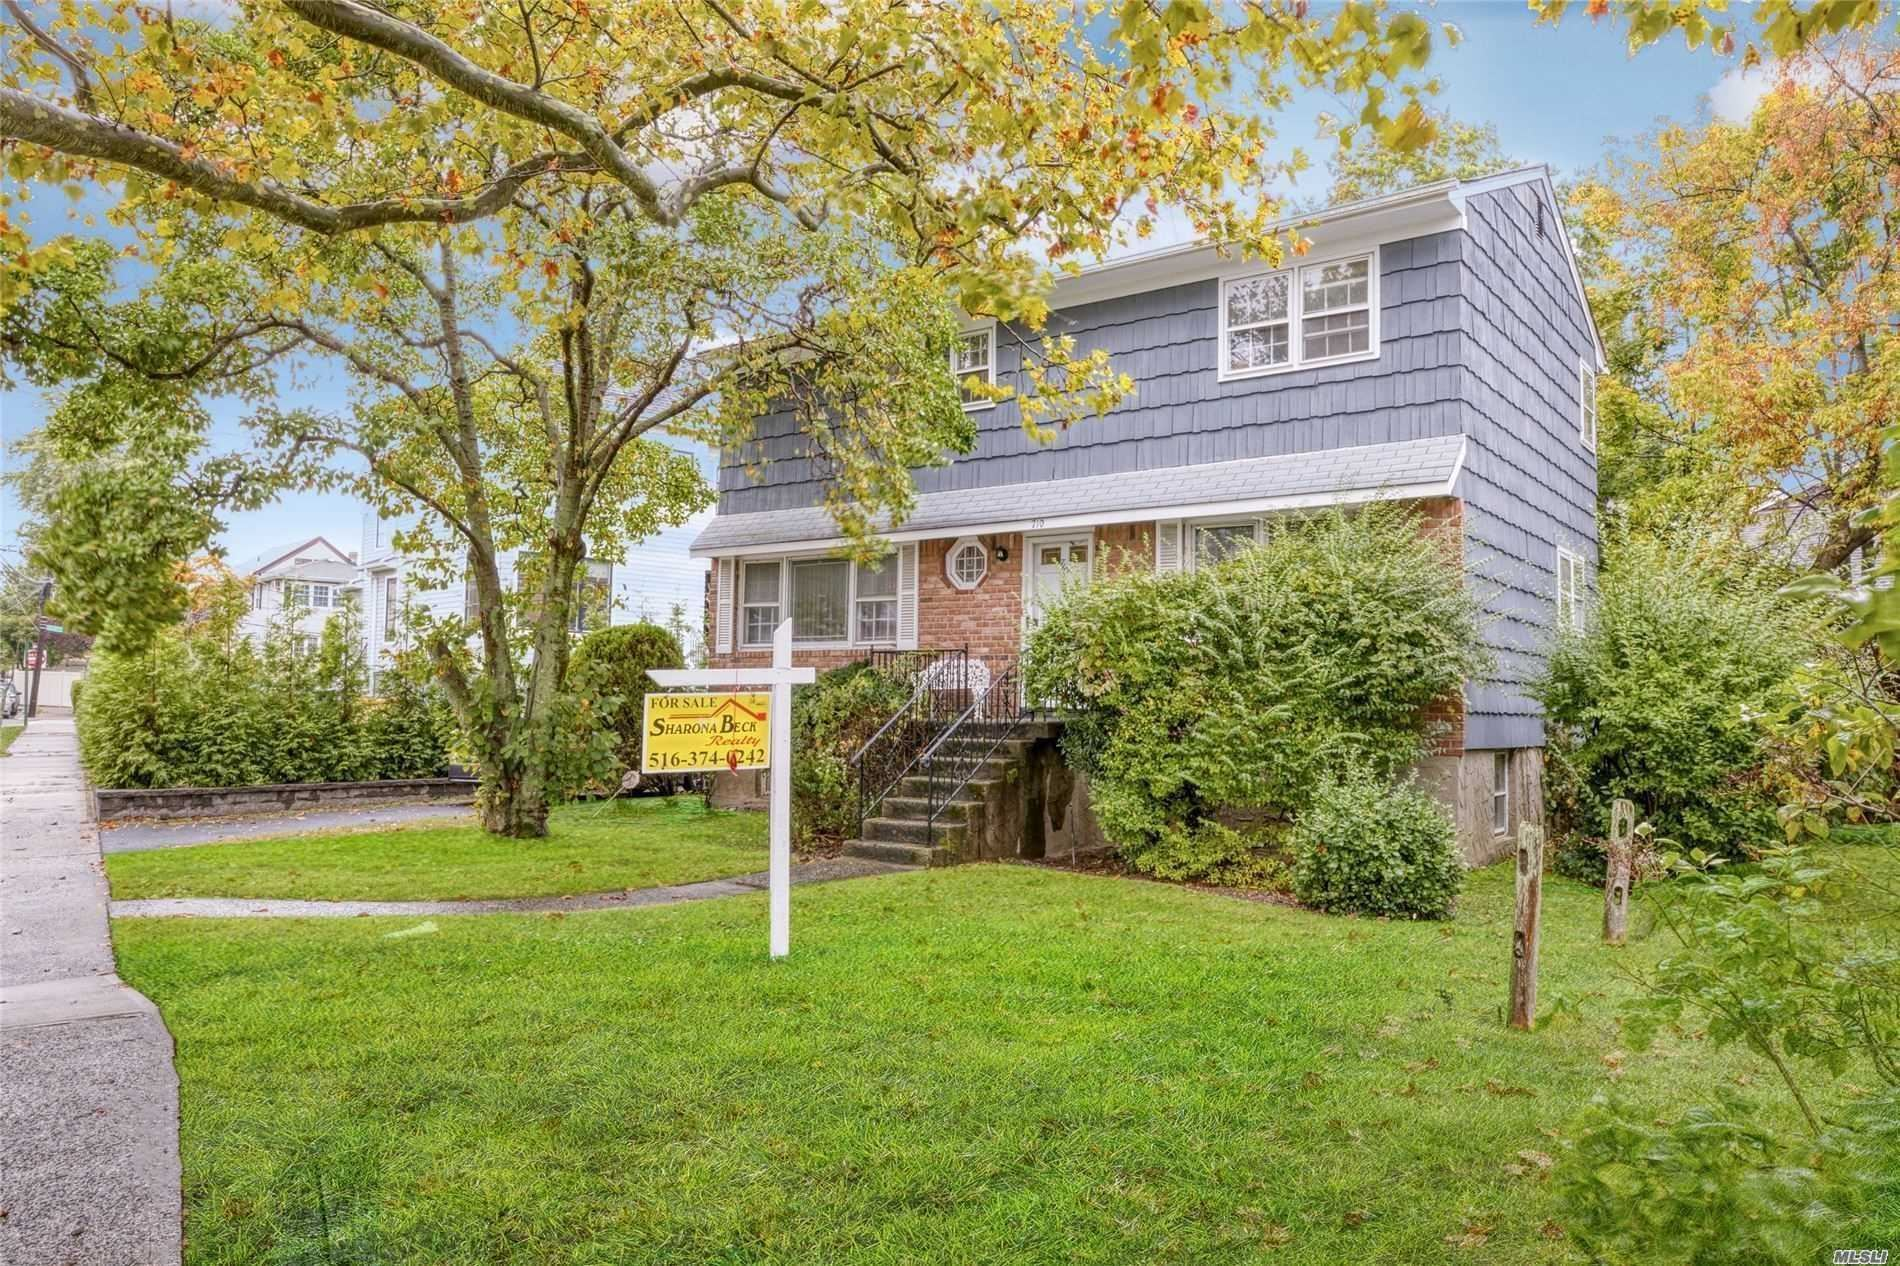 710 Frisco Avenue, Far Rockaway, NY 11691 - MLS#: 3215275